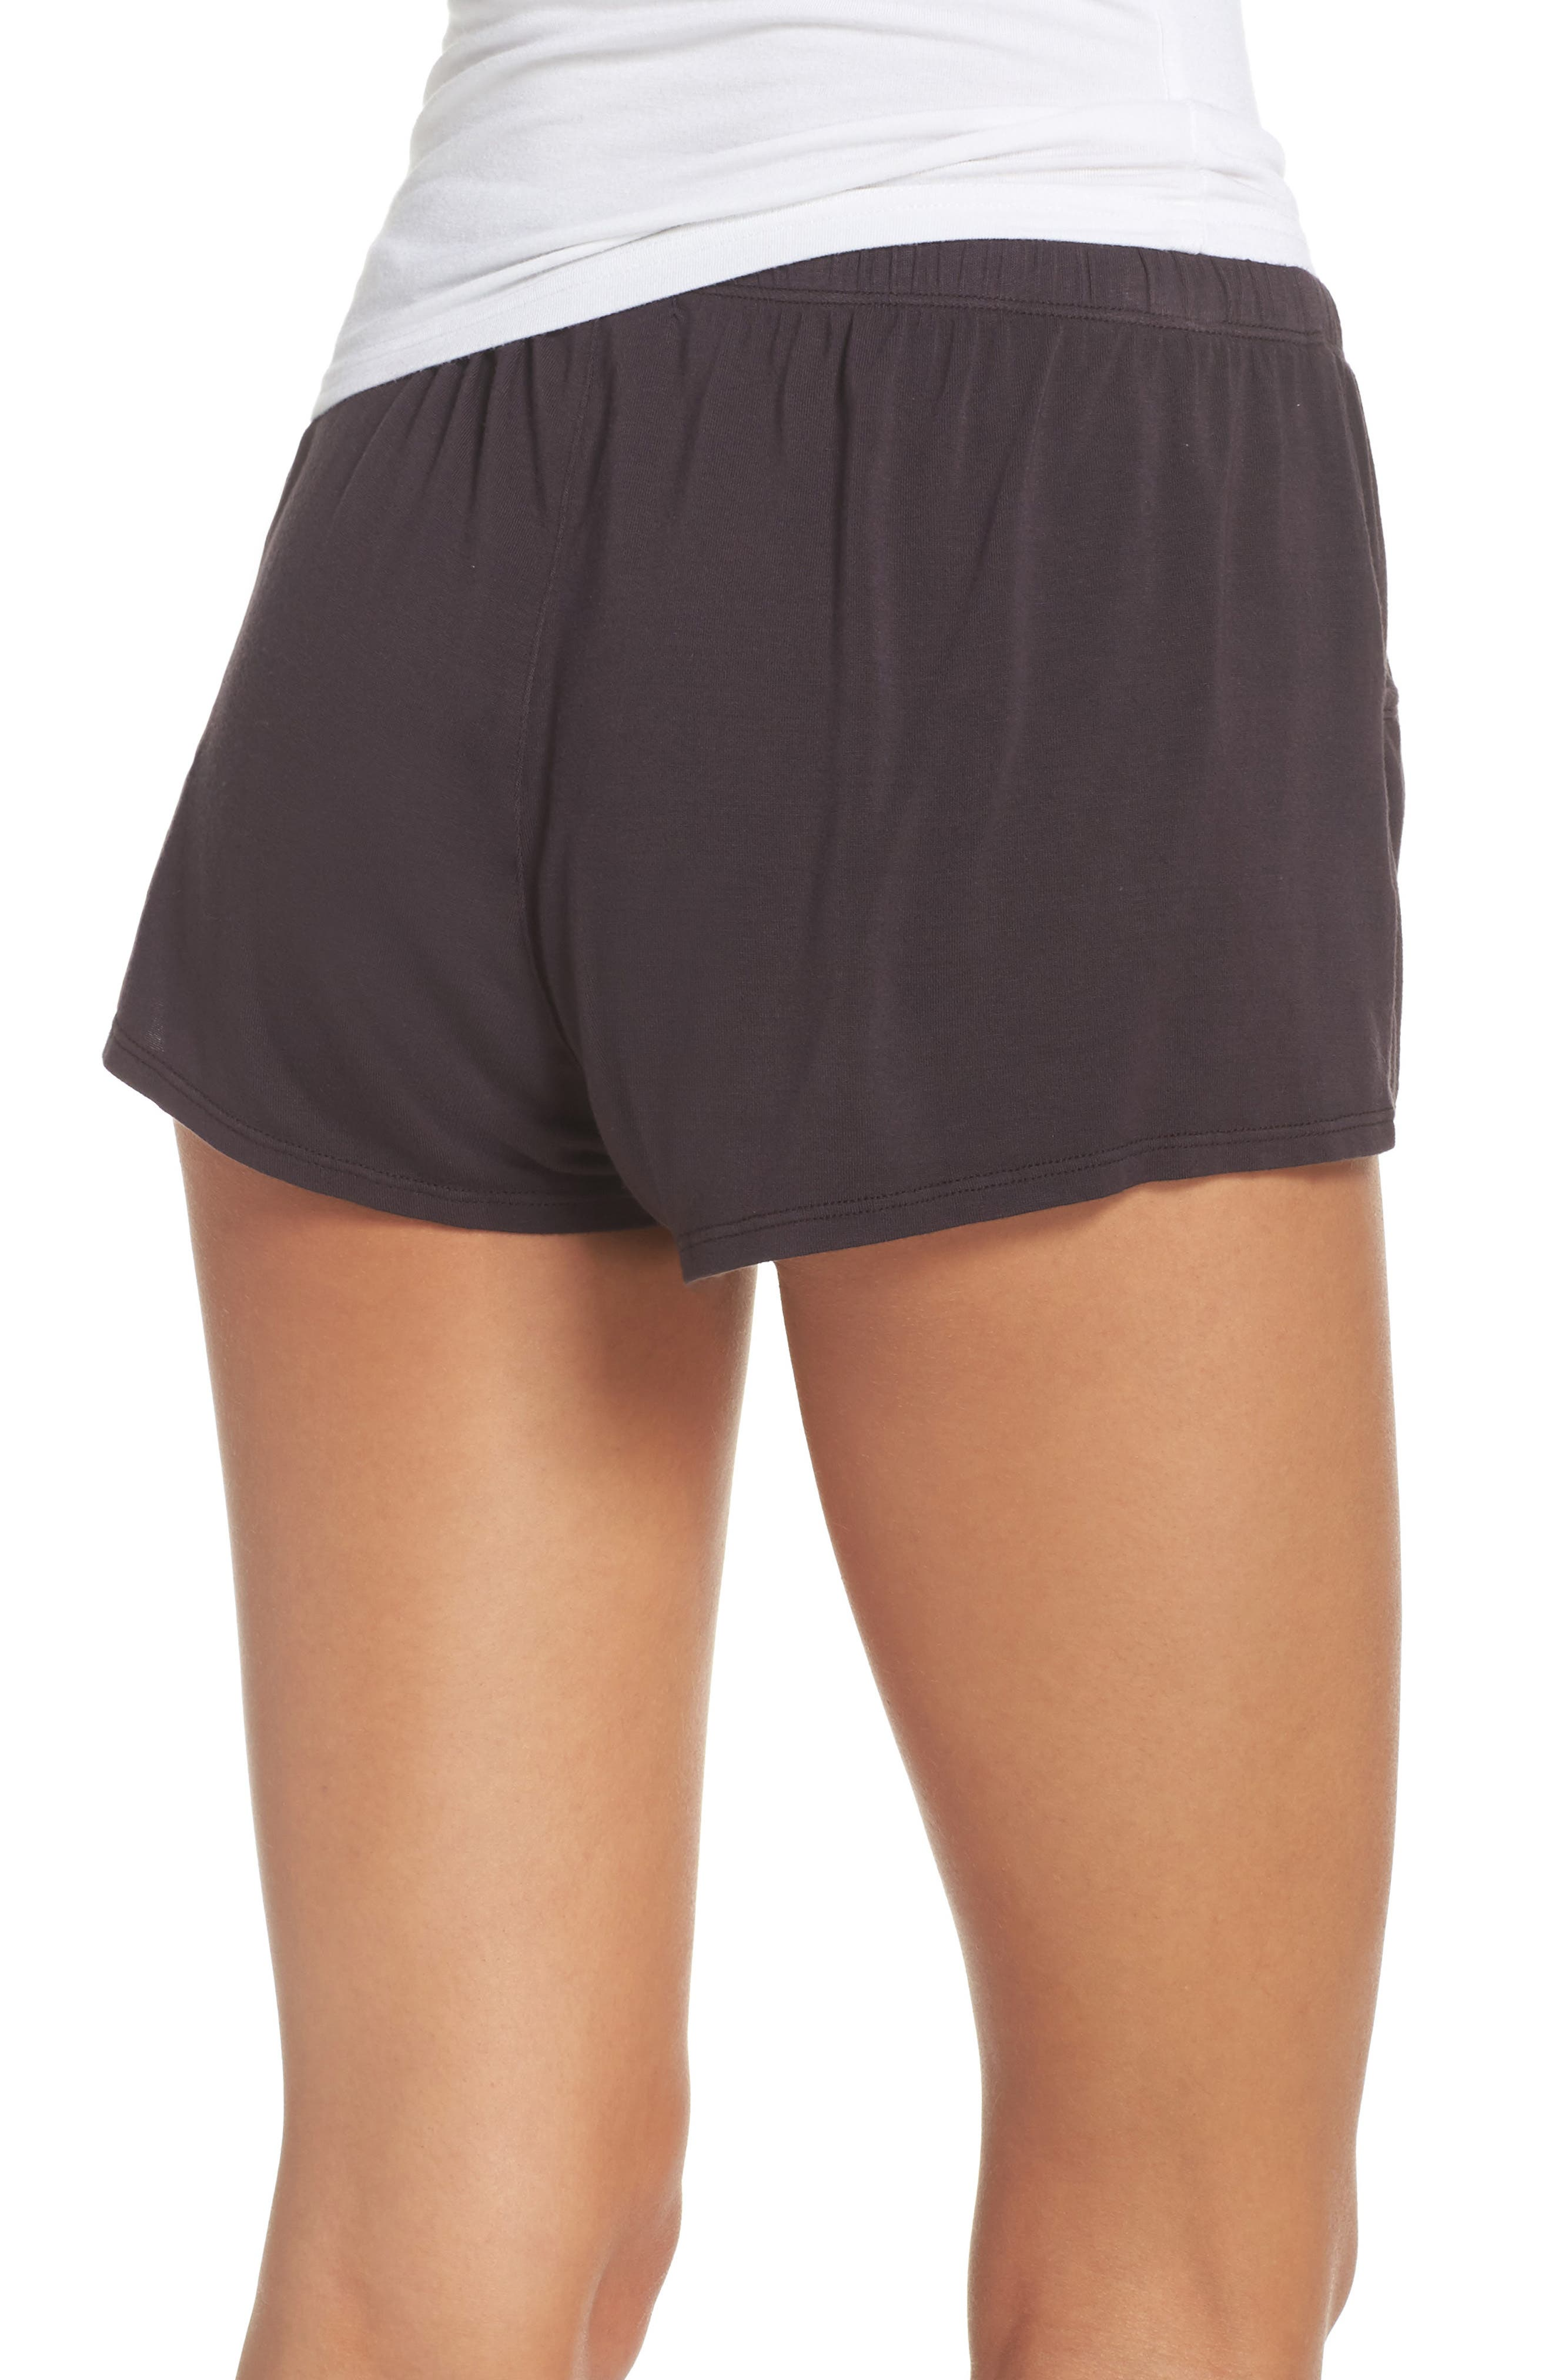 Tammy Lounge Shorts,                             Alternate thumbnail 2, color,                             020